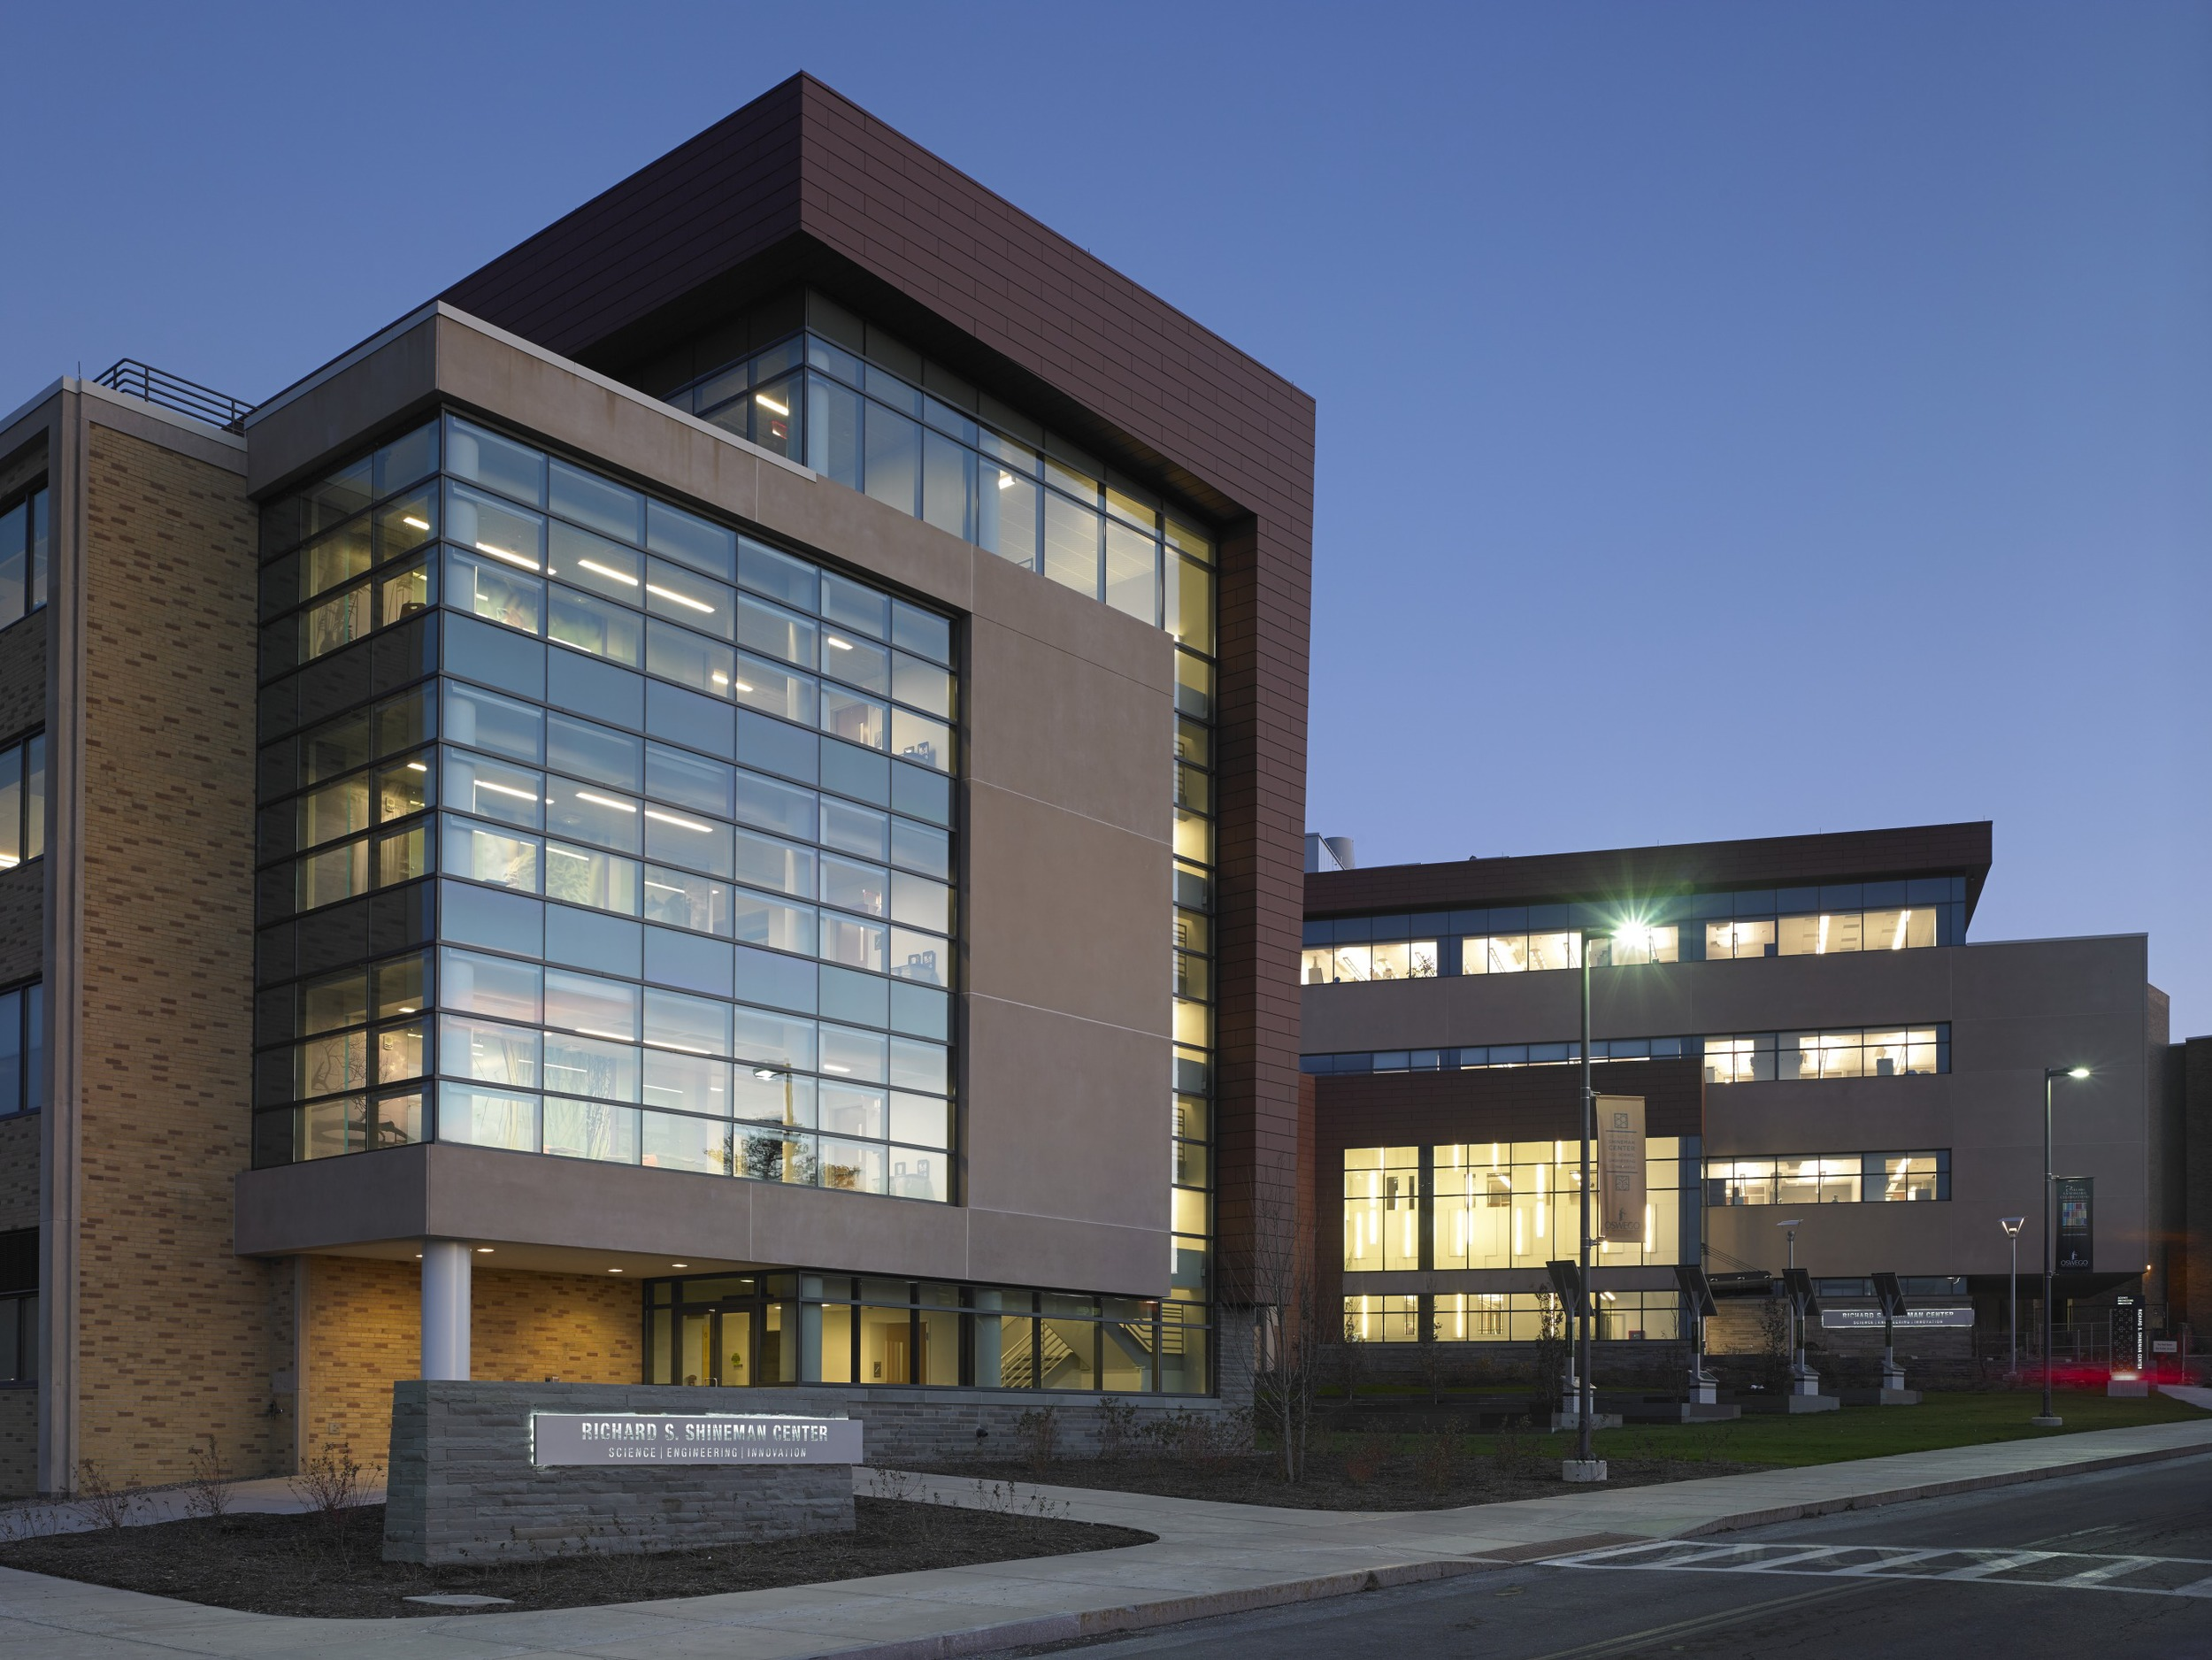 SUNY Oswego / Center for Science, Engineering, & Innovation